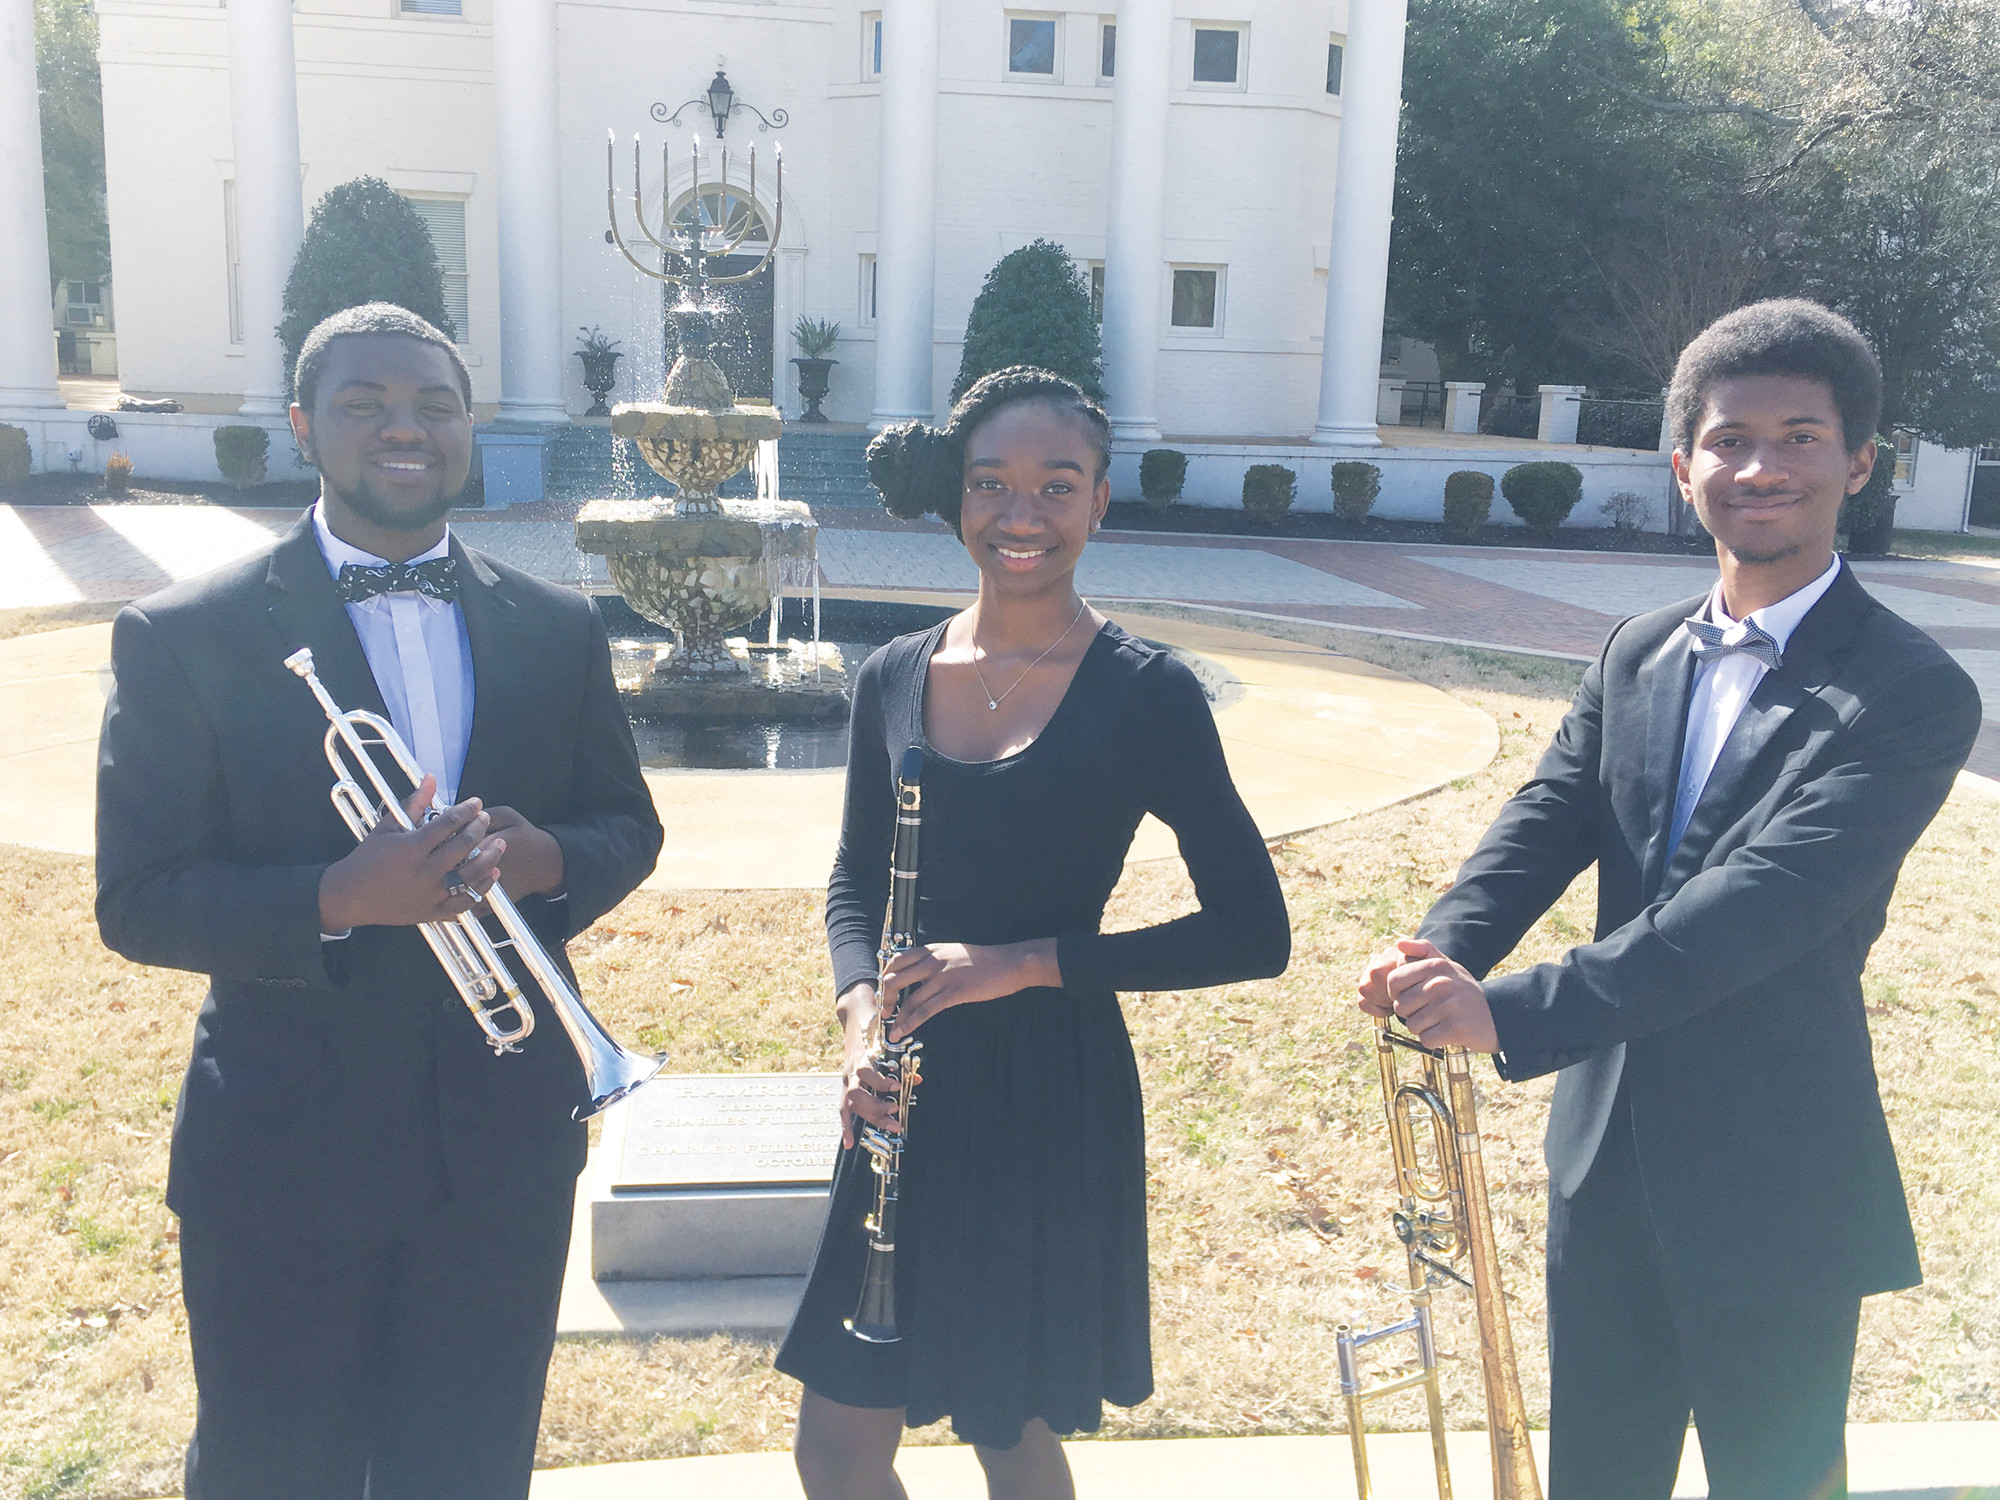 Michael Miller, Nastajia Hamilton and Logan Mack represented Manning High School recently at the 11th-Annual Limestone College High School Honor Band Clinic. The three also represented Manning High at the 40th-Annual USC Symphonic Band Clinic recently. They had an intensive four-day musical experience filled with rehearsal, Master classes and concert performances by some of the top high school, collegiate and professional groups in South Carolina and Georgia. All three had a stellar performance at the Koger Center.